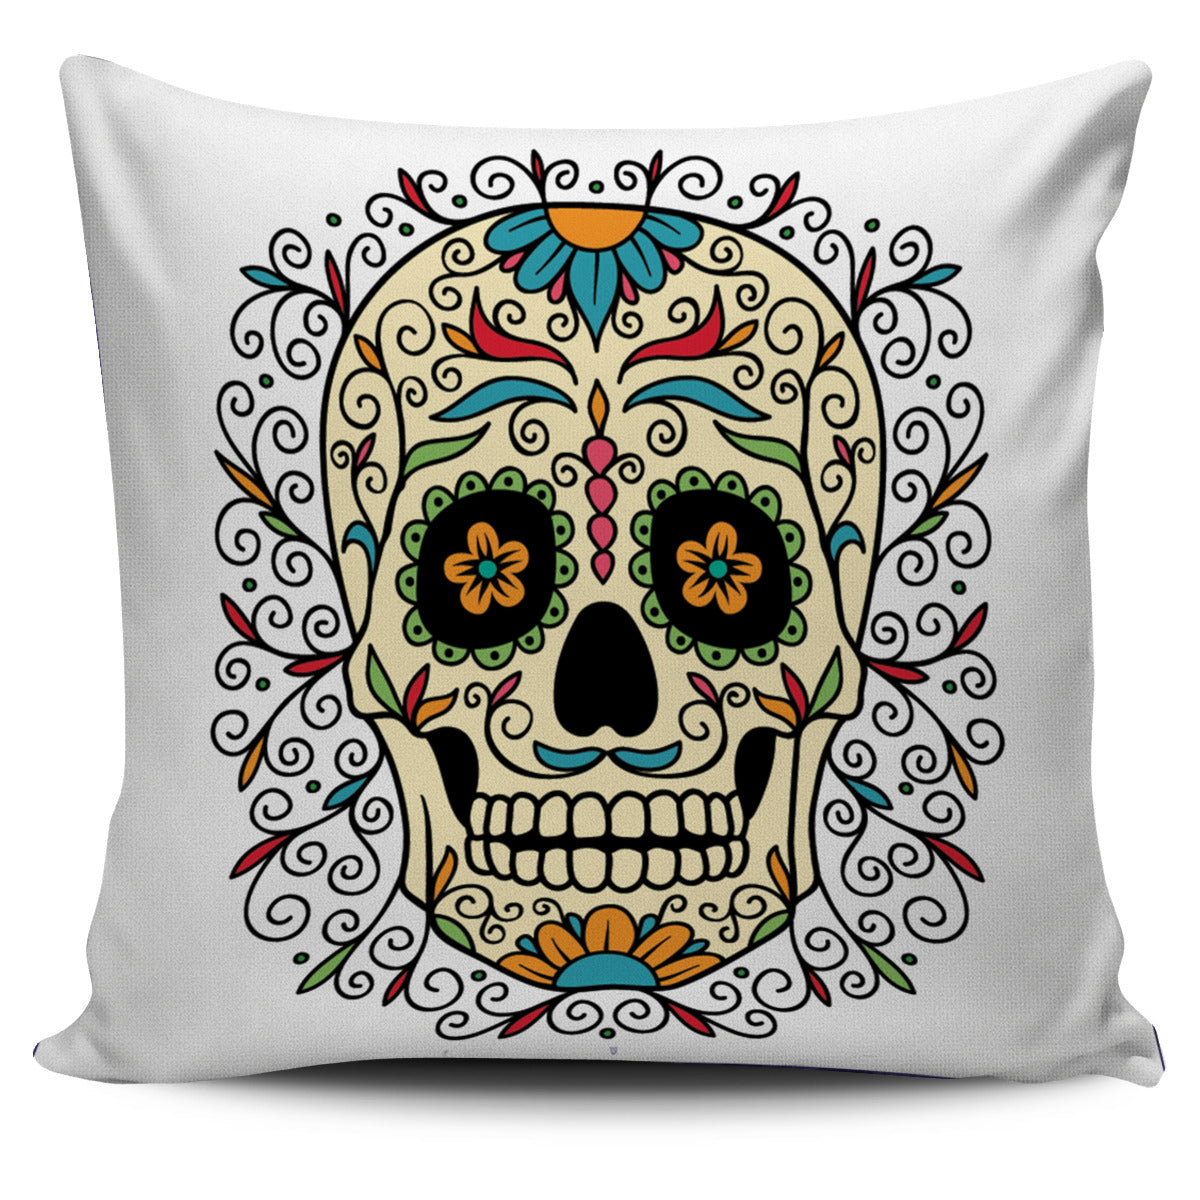 Flower Skull Pillow Cover